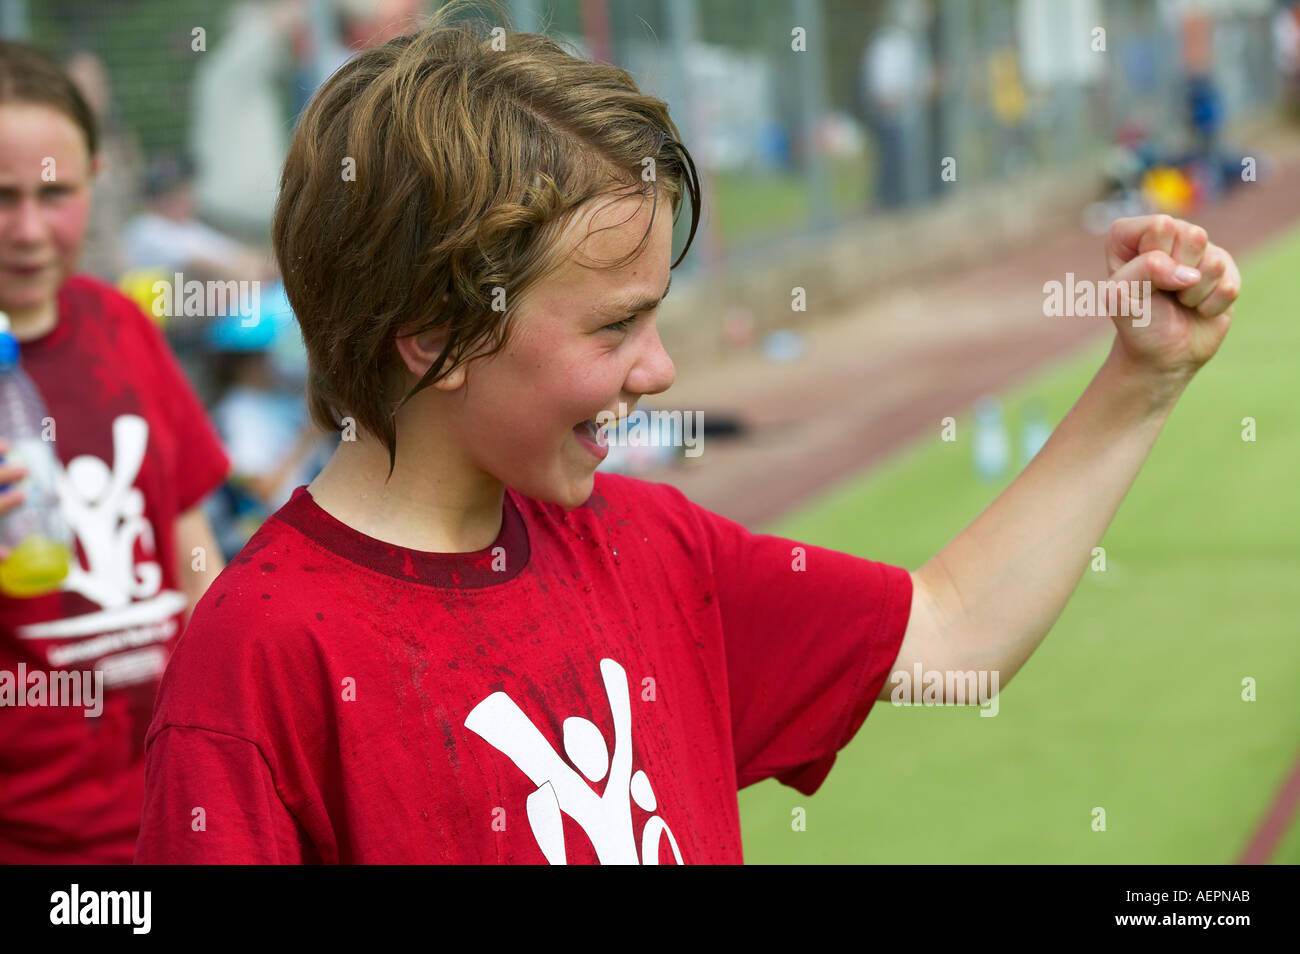 young girl cheering on her team mates at a hockey match - Stock Image